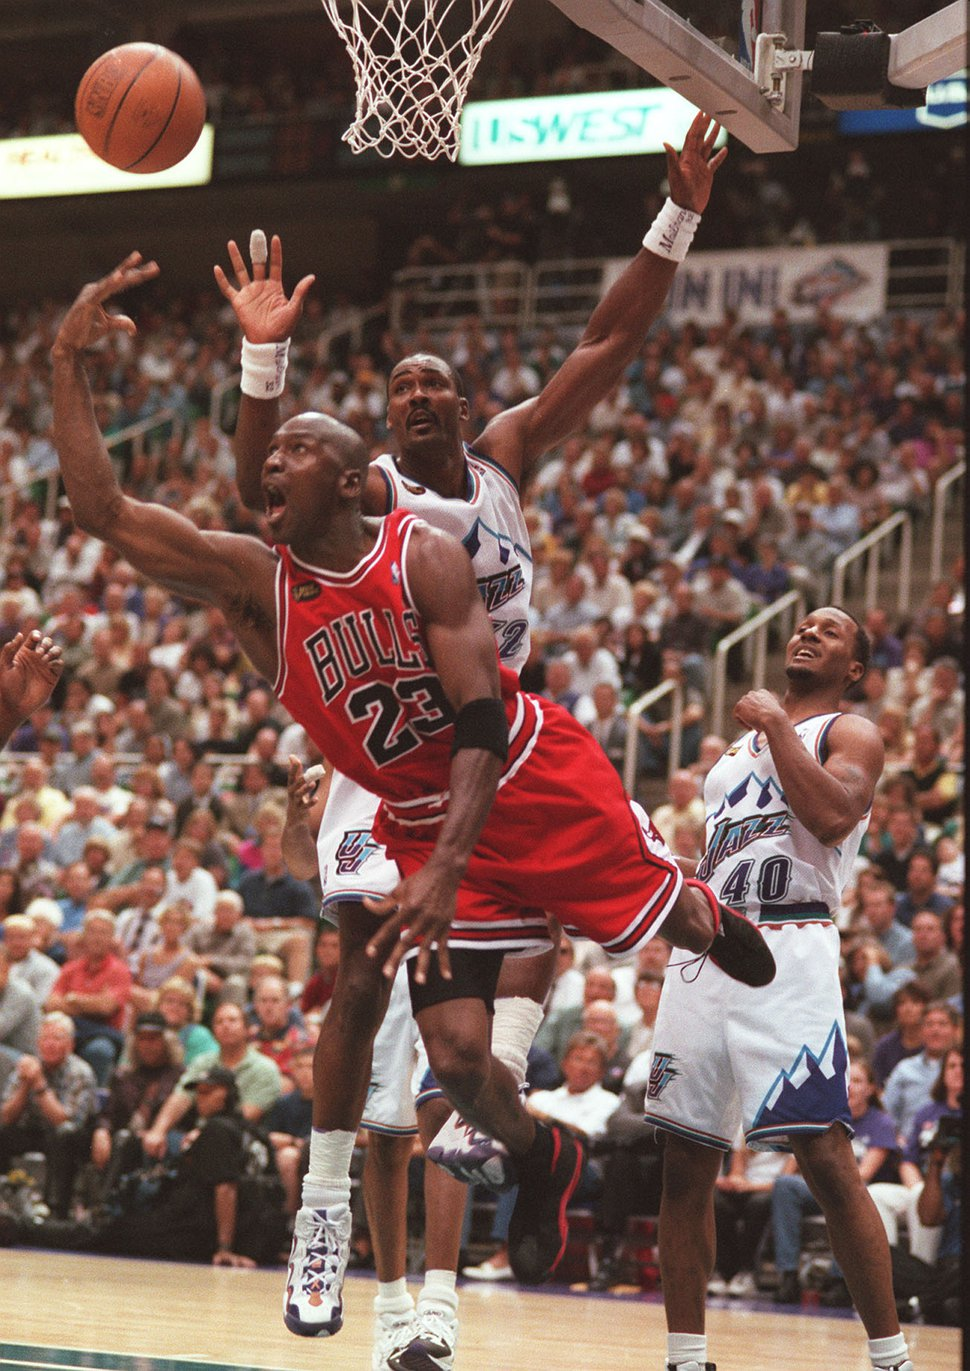 (Trent Nelson | Tribune file photo) Chicago Bulls guard Michael Jordan (23) attempts a shot going past Utah Jazz forward Karl Malone (32) during Game 1 of the 1998 NBA Finals at the Delta Center in Salt Lake City, June 3, 1998.